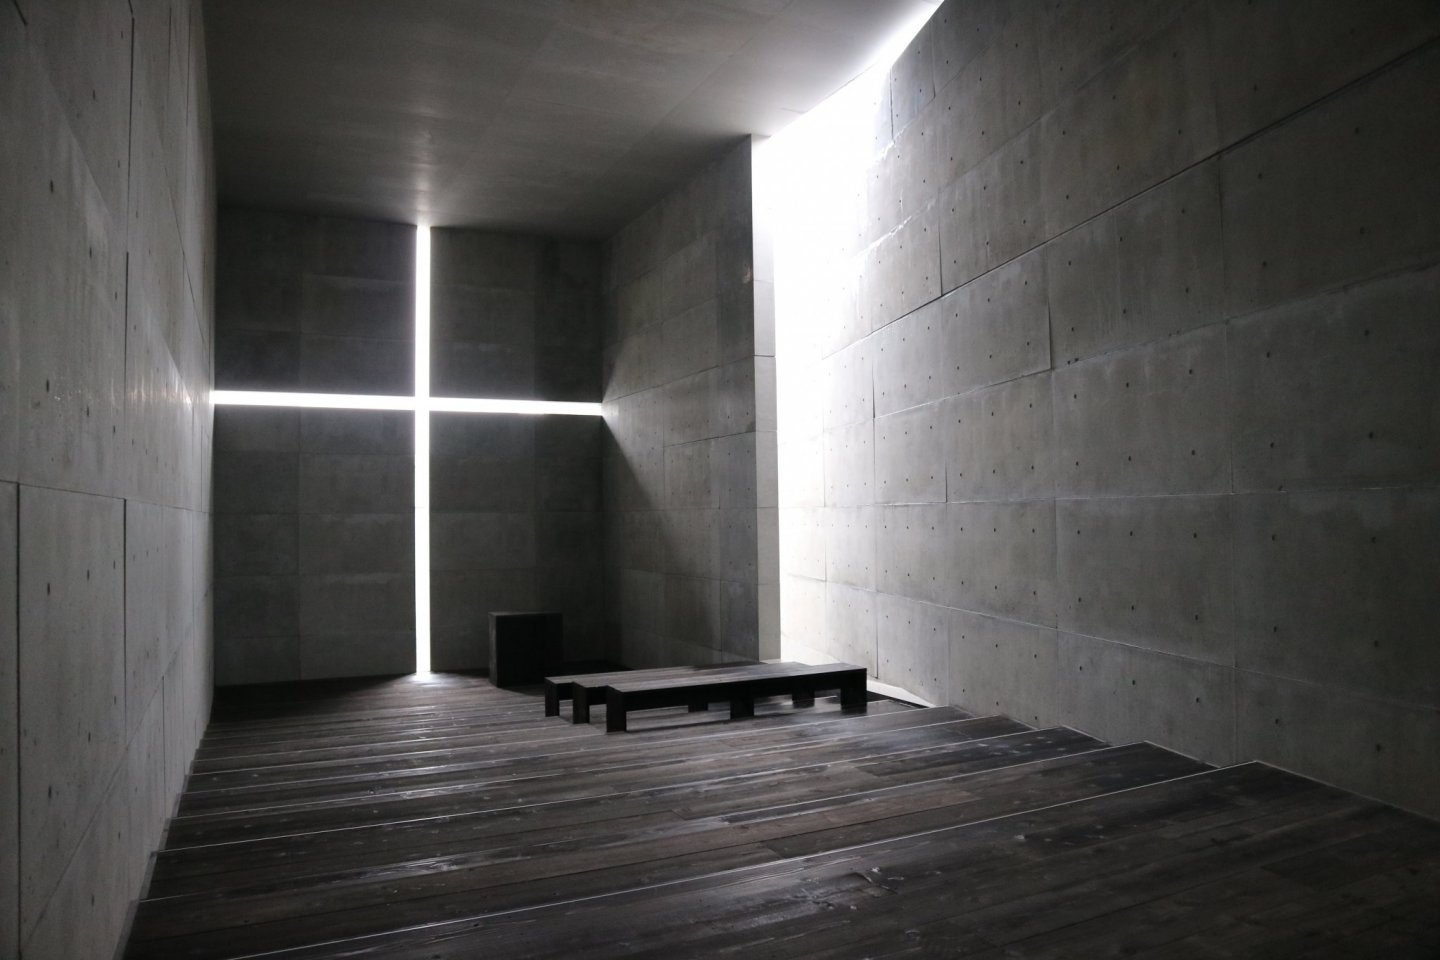 A full-size replica of Church of Light was created by Ando especially for the exhibition